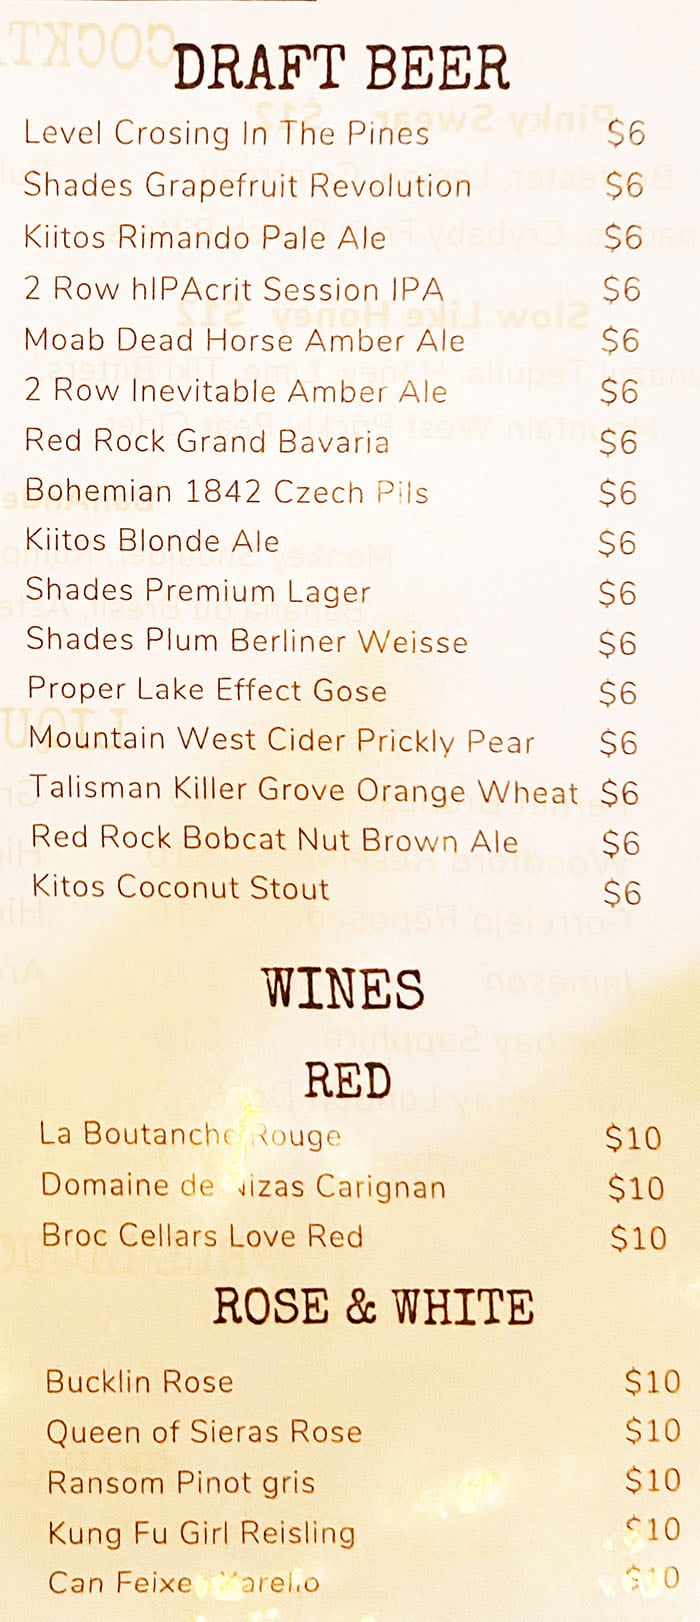 Beer Zombies menu - draft beer, wine